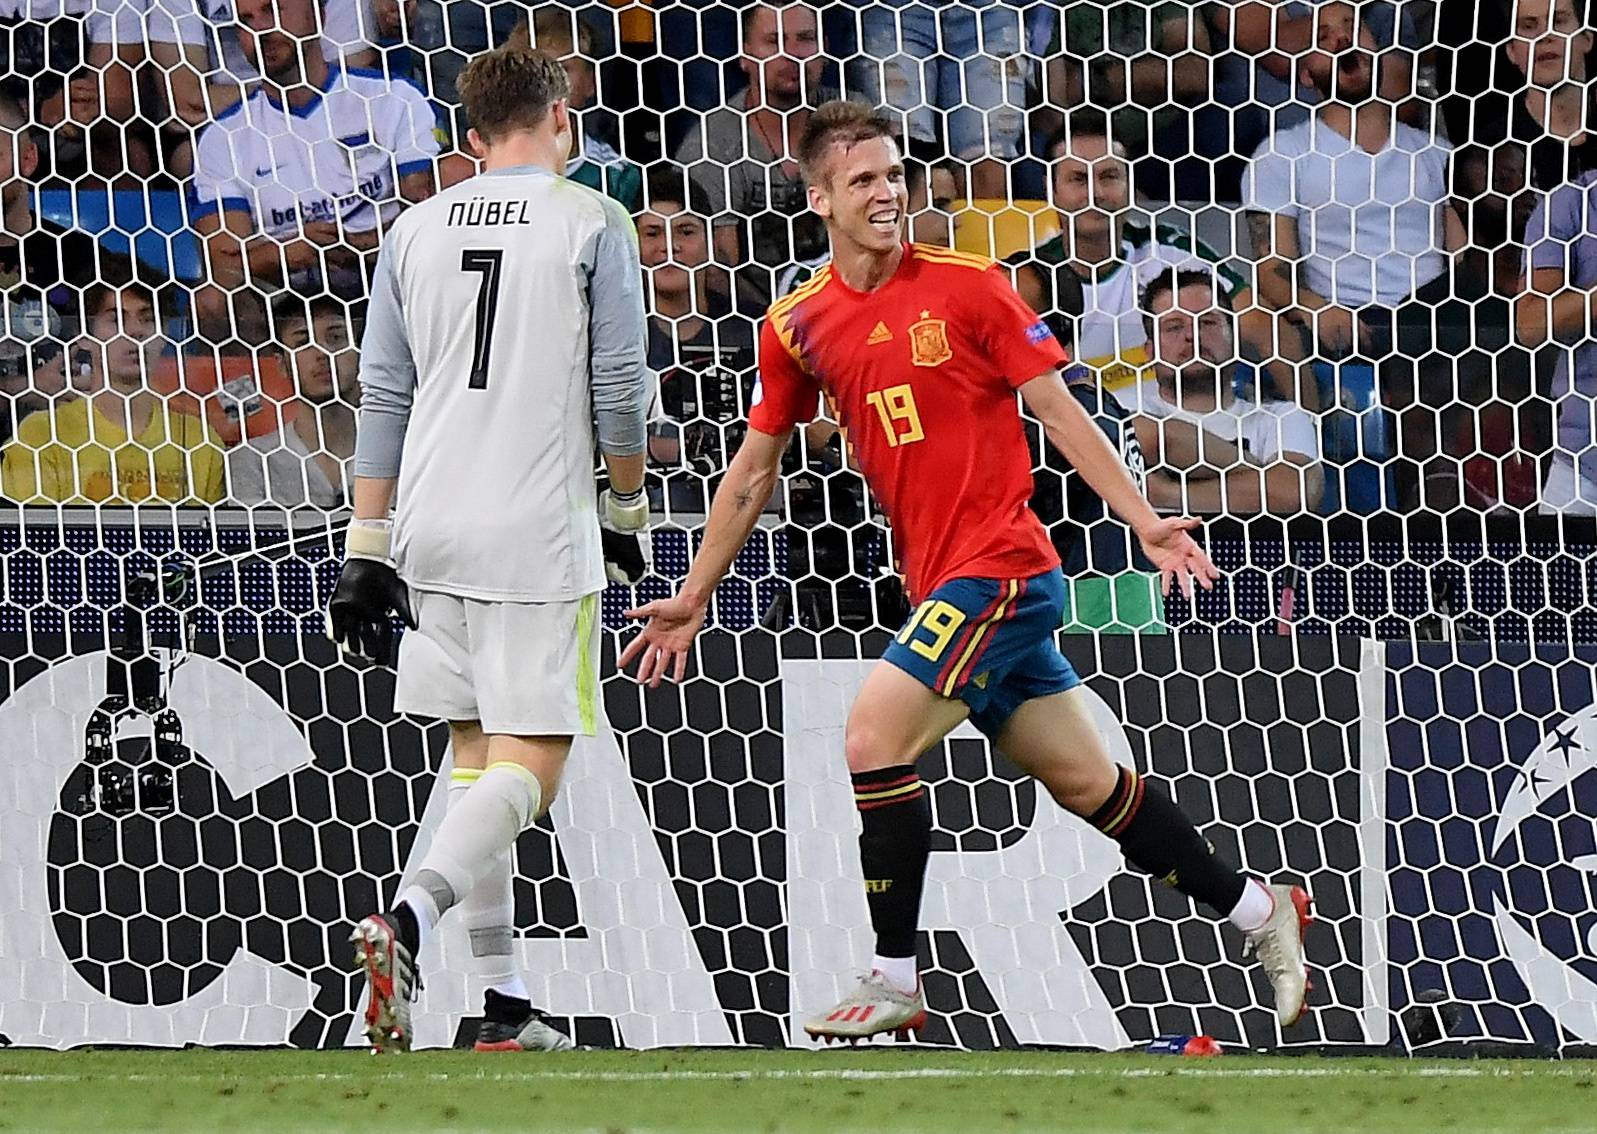 2019 UEFA European Under-21 Championship - Final - Spain v Germany